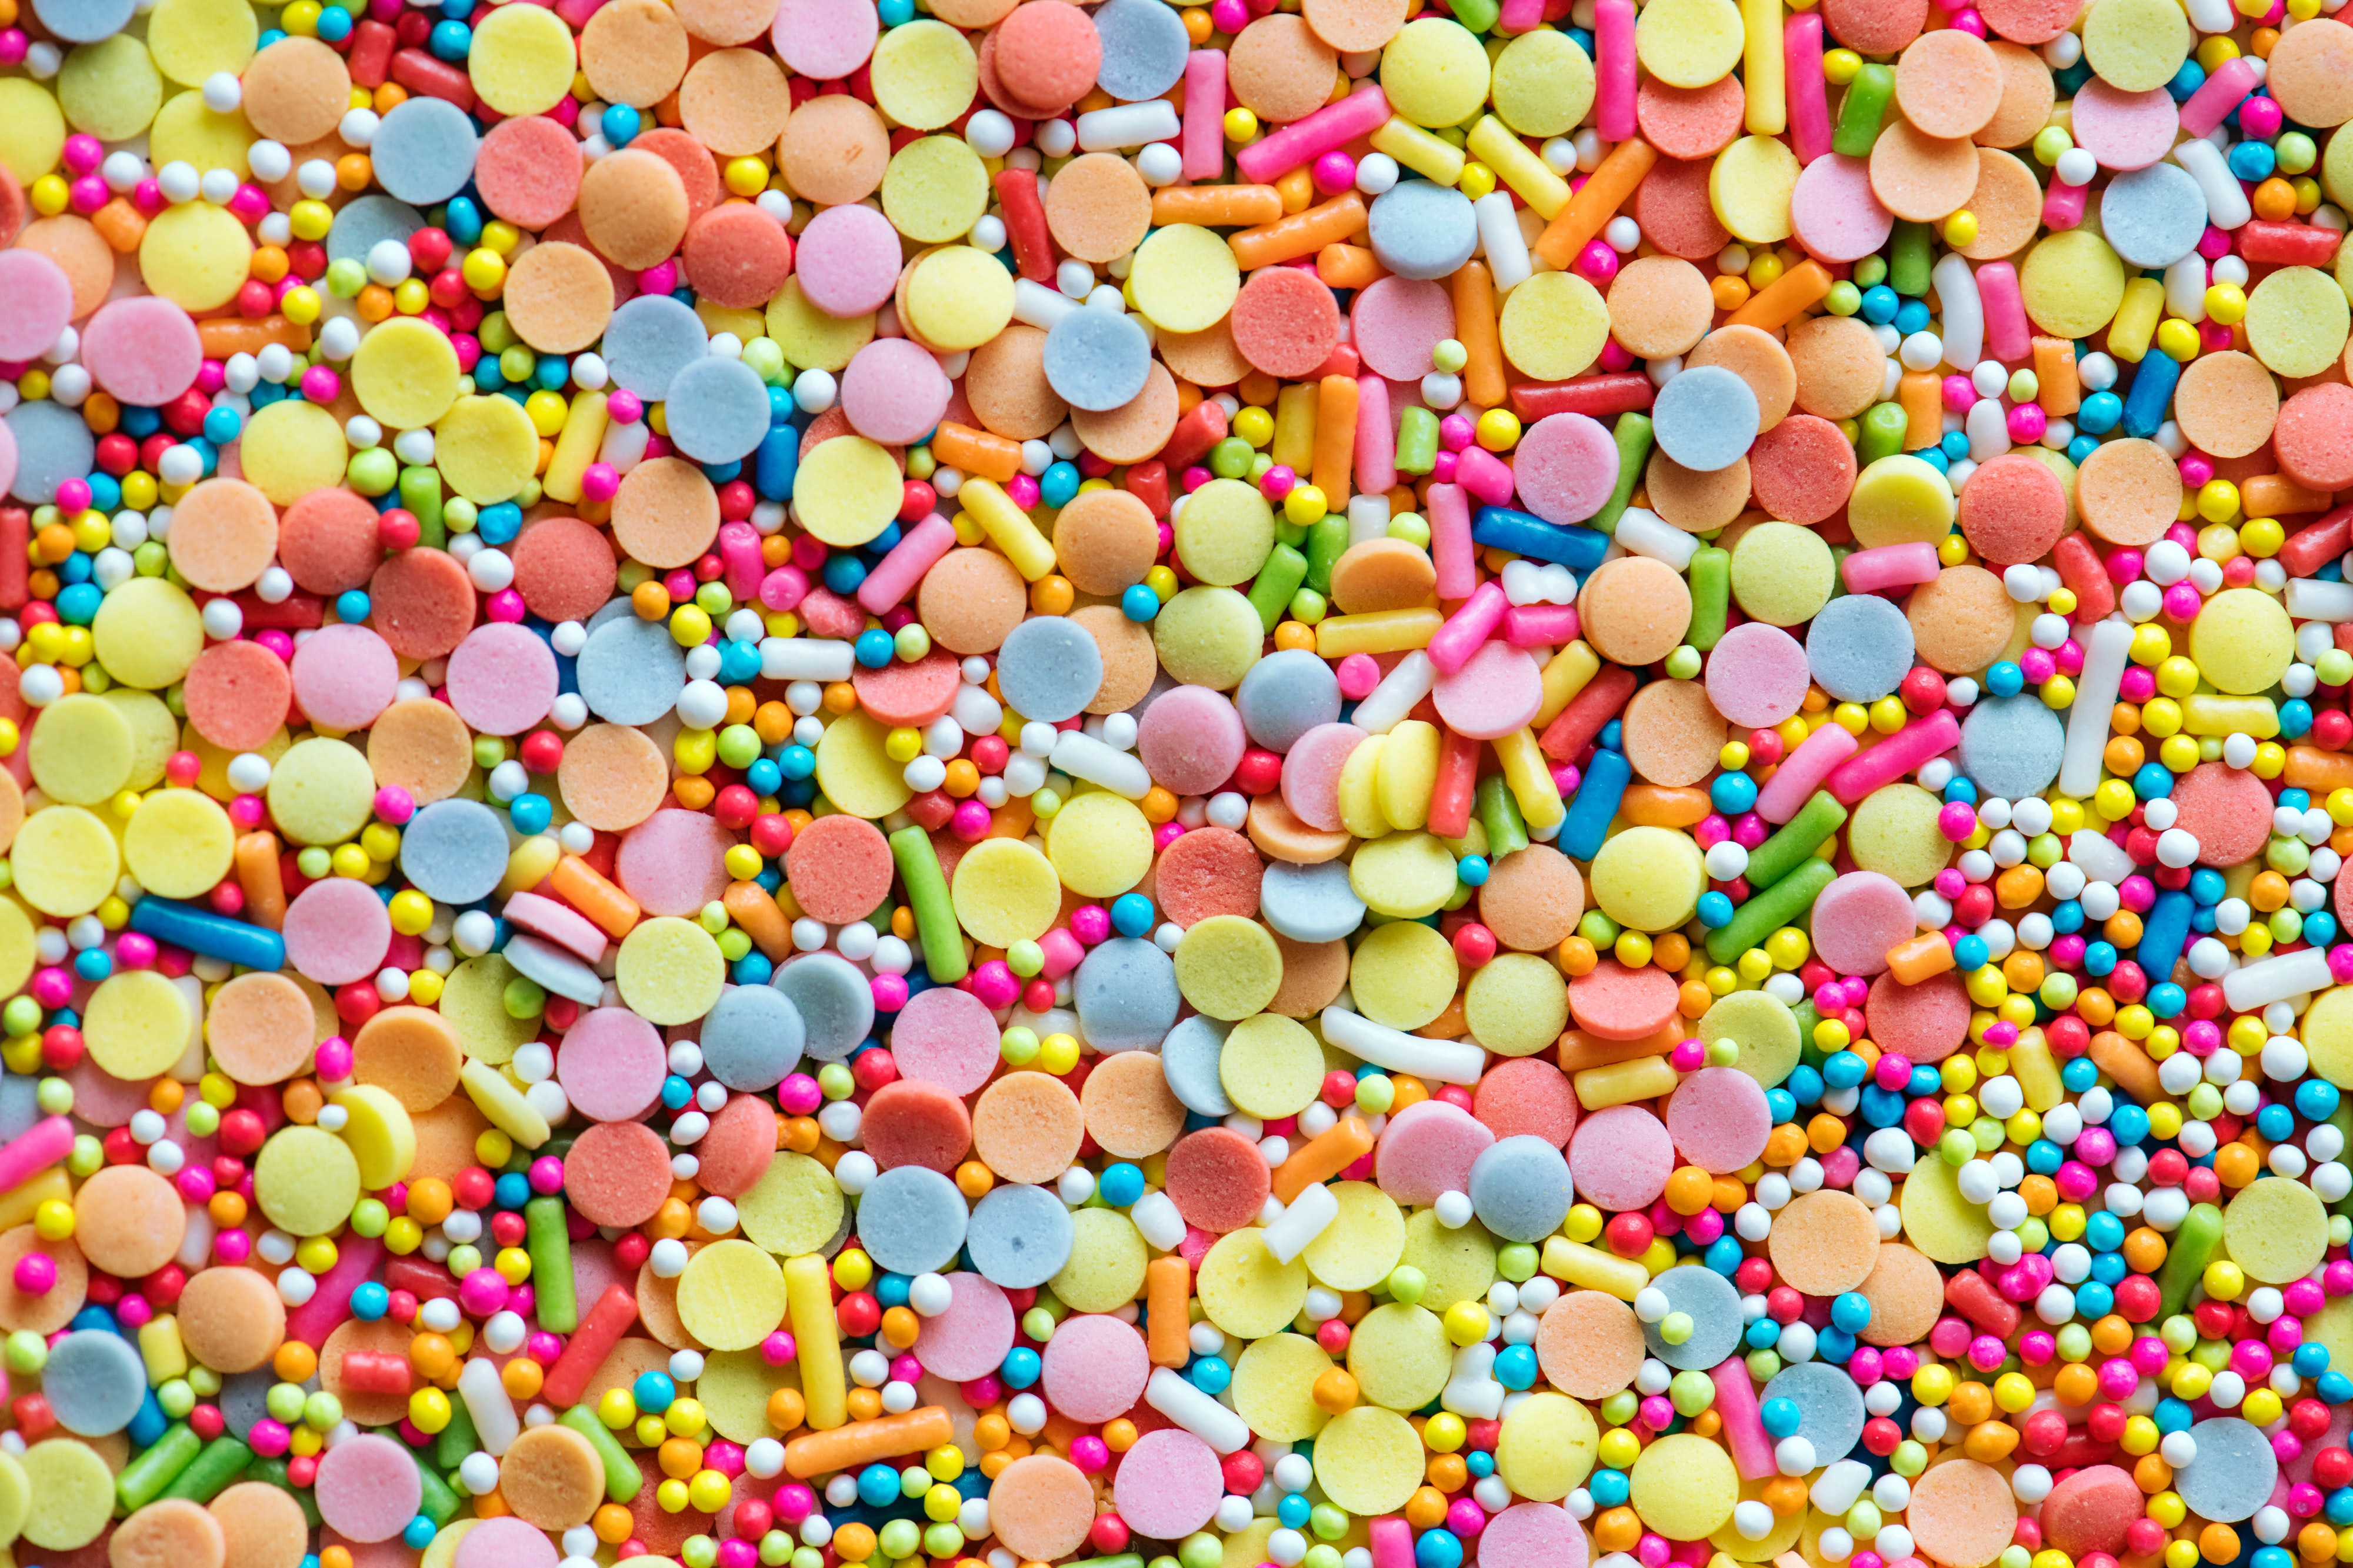 Image of candy.